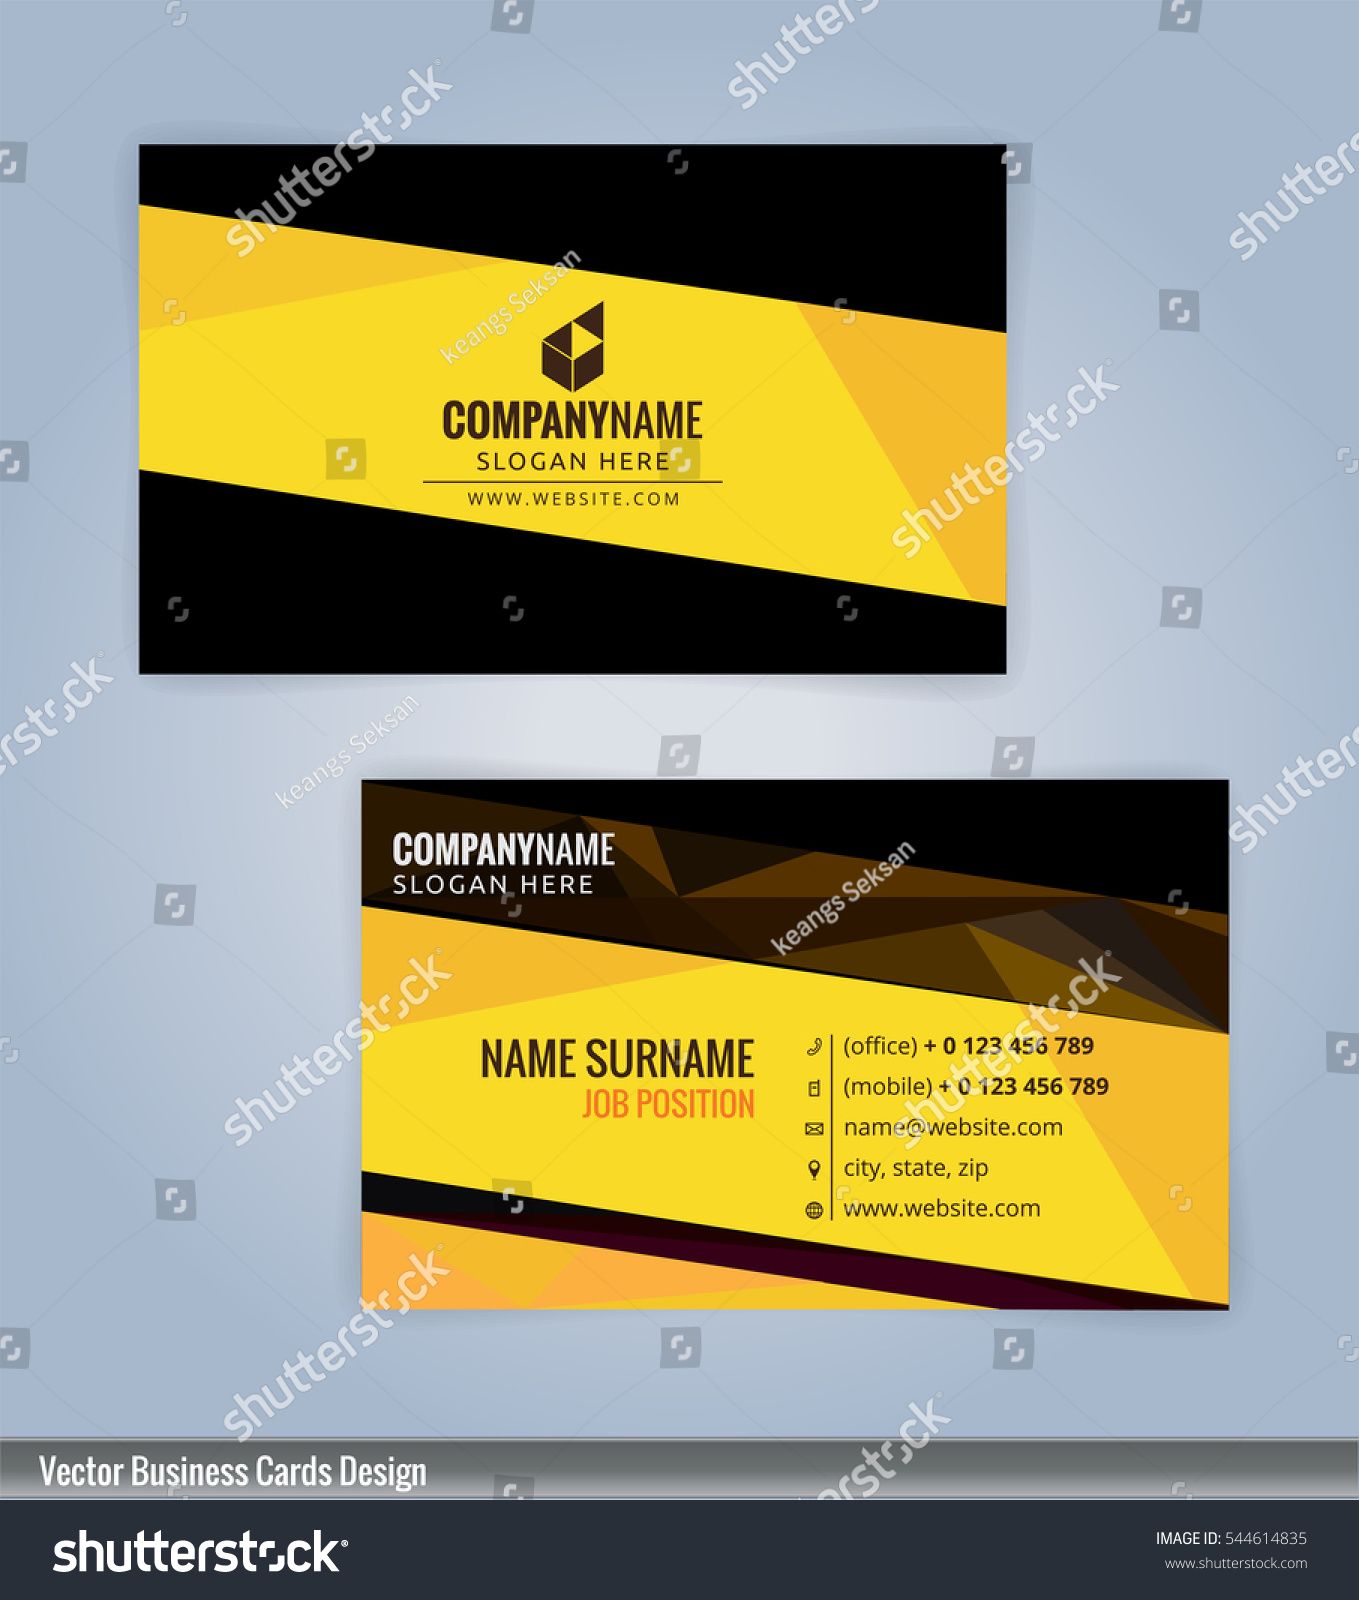 New image of business card website business cards and resume business card website template eliolera magicingreecefo Gallery